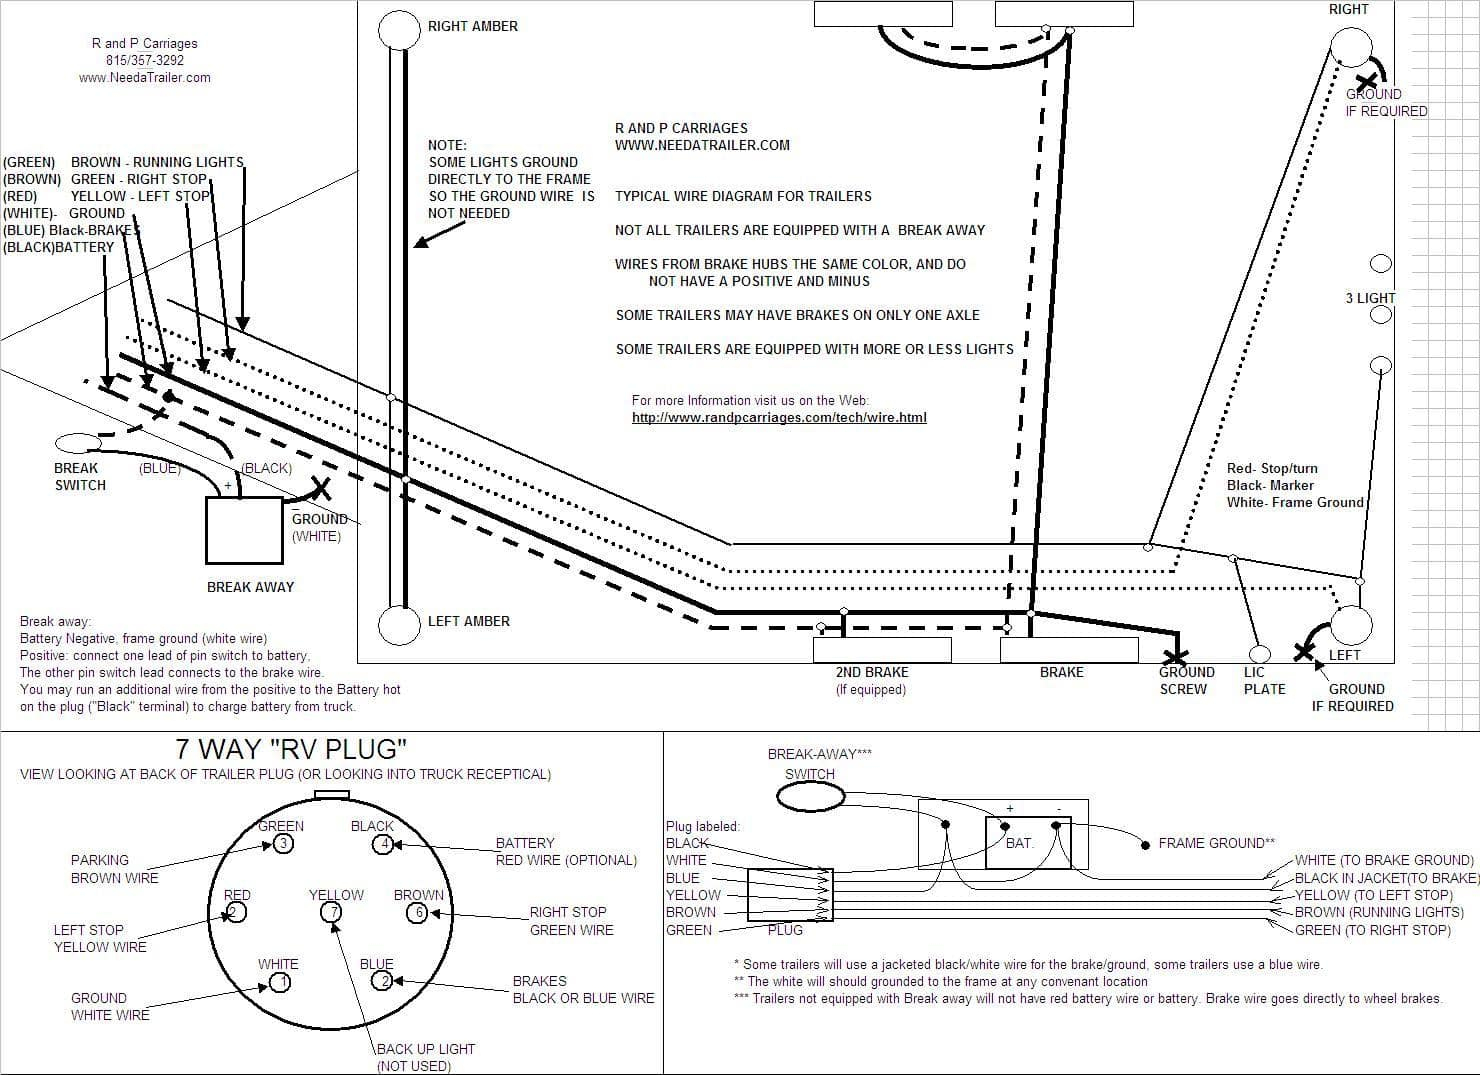 7 Way Plug Information | R And P Carriages | Cargo, Utility, Dump - Down2Earth Trailer Wiring Diagram